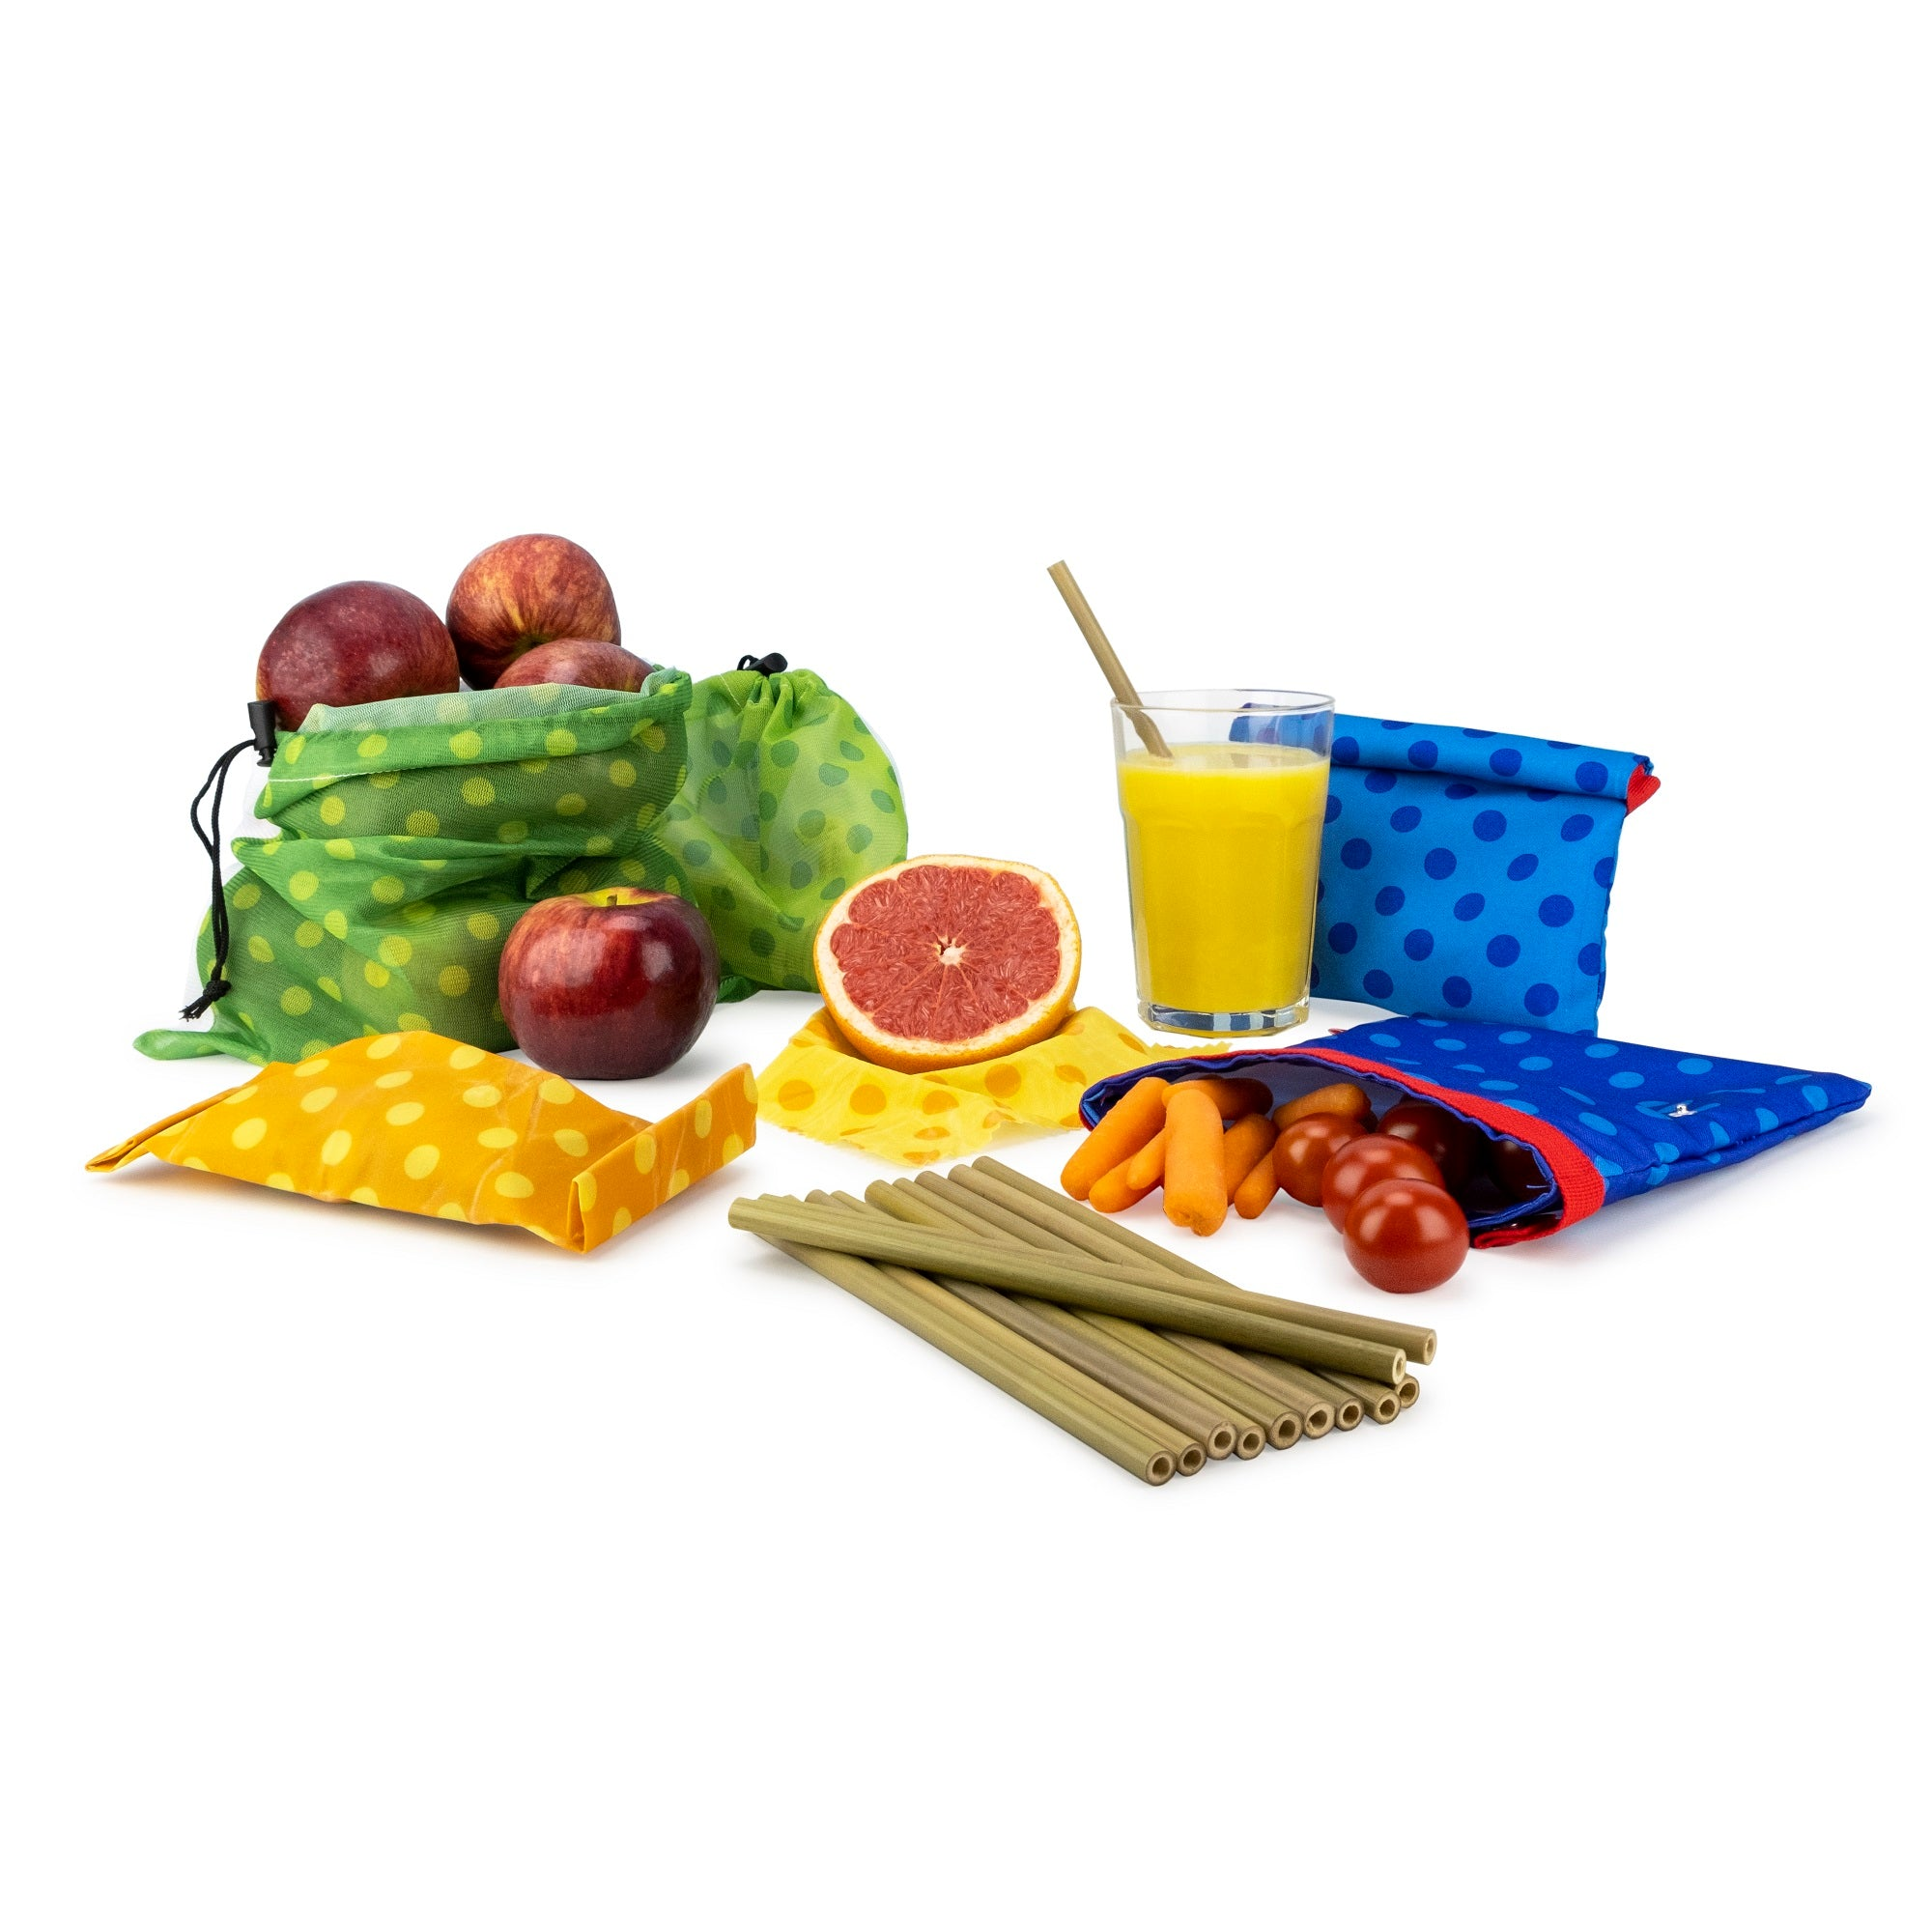 Set of Reusable Bags, Wraps and Straws for a Zero Waste Start